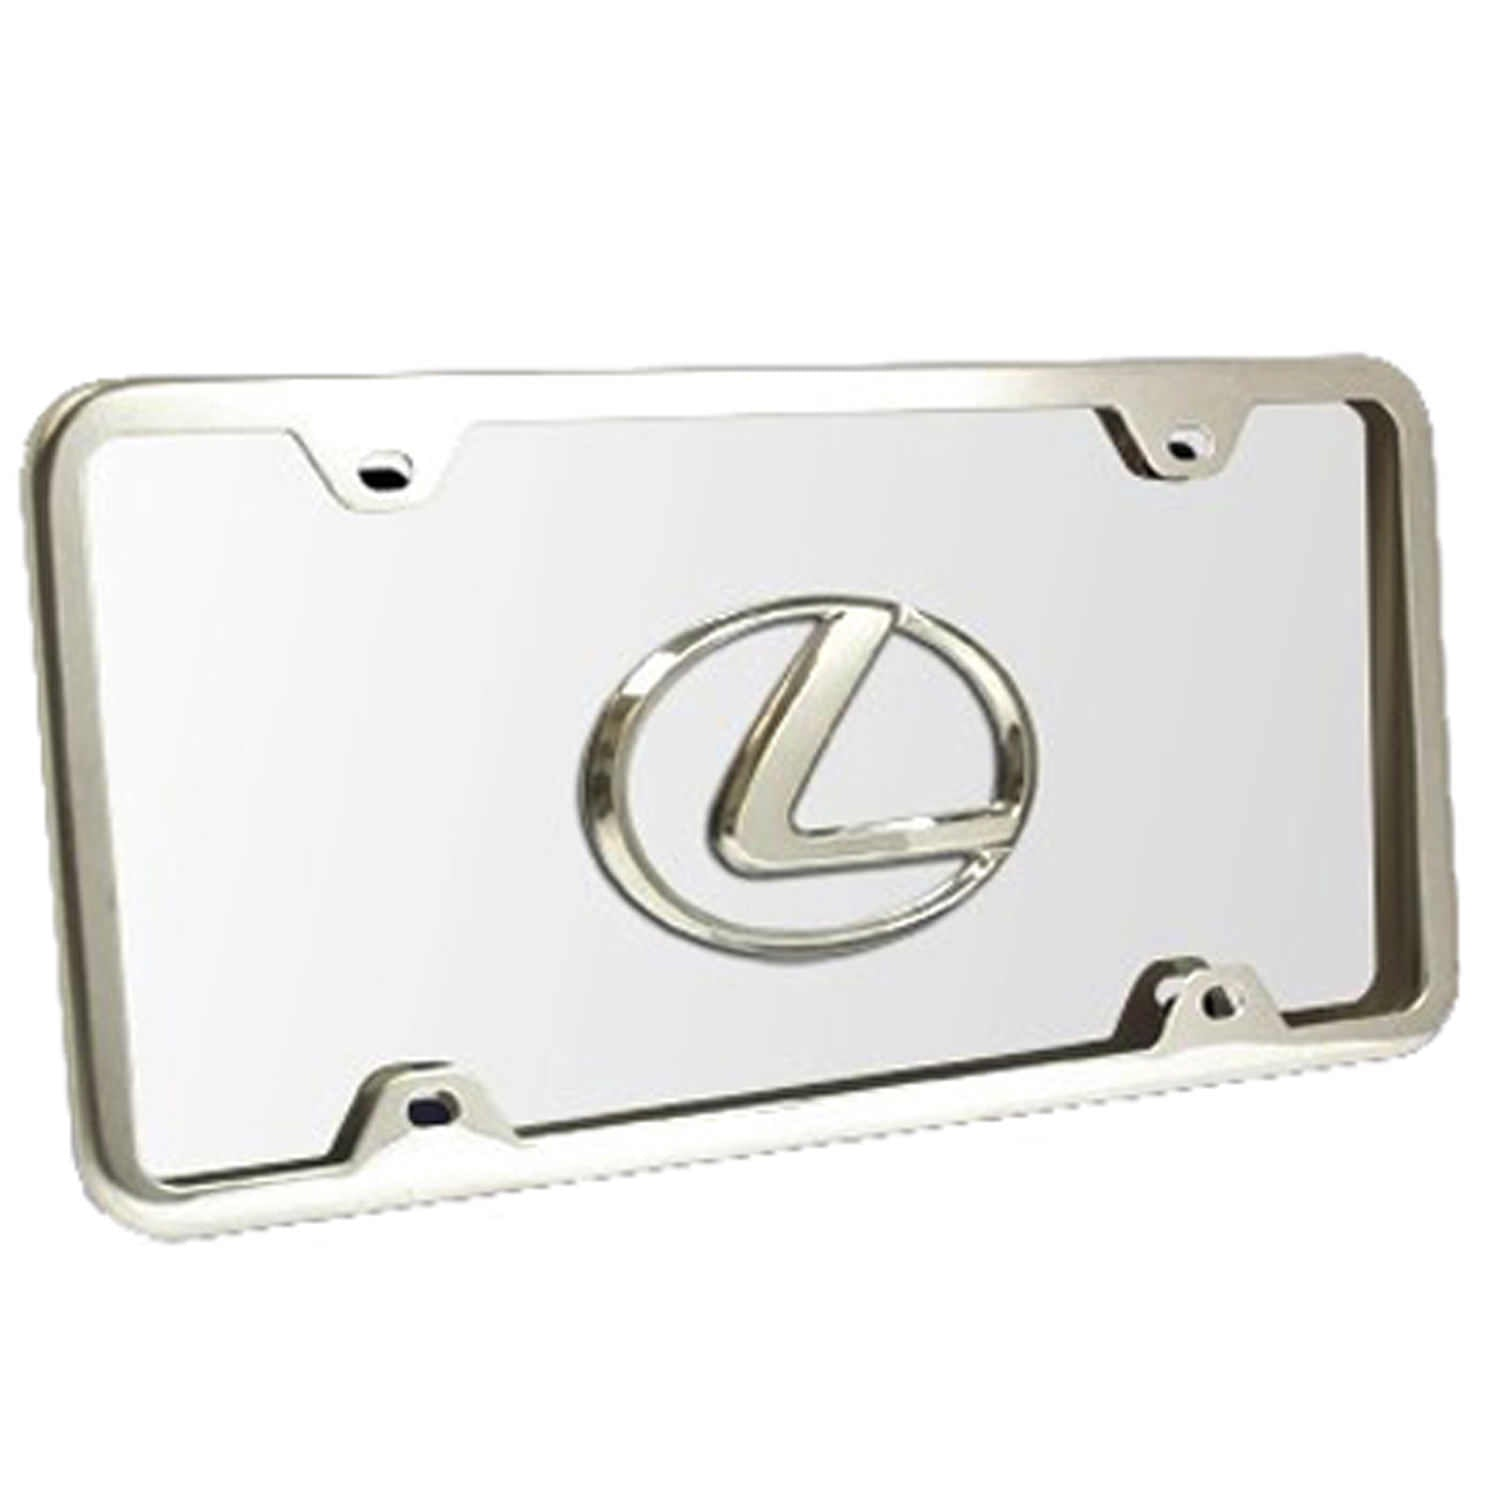 Lexus Logo License Plate Kit (Chrome) - Custom Werks